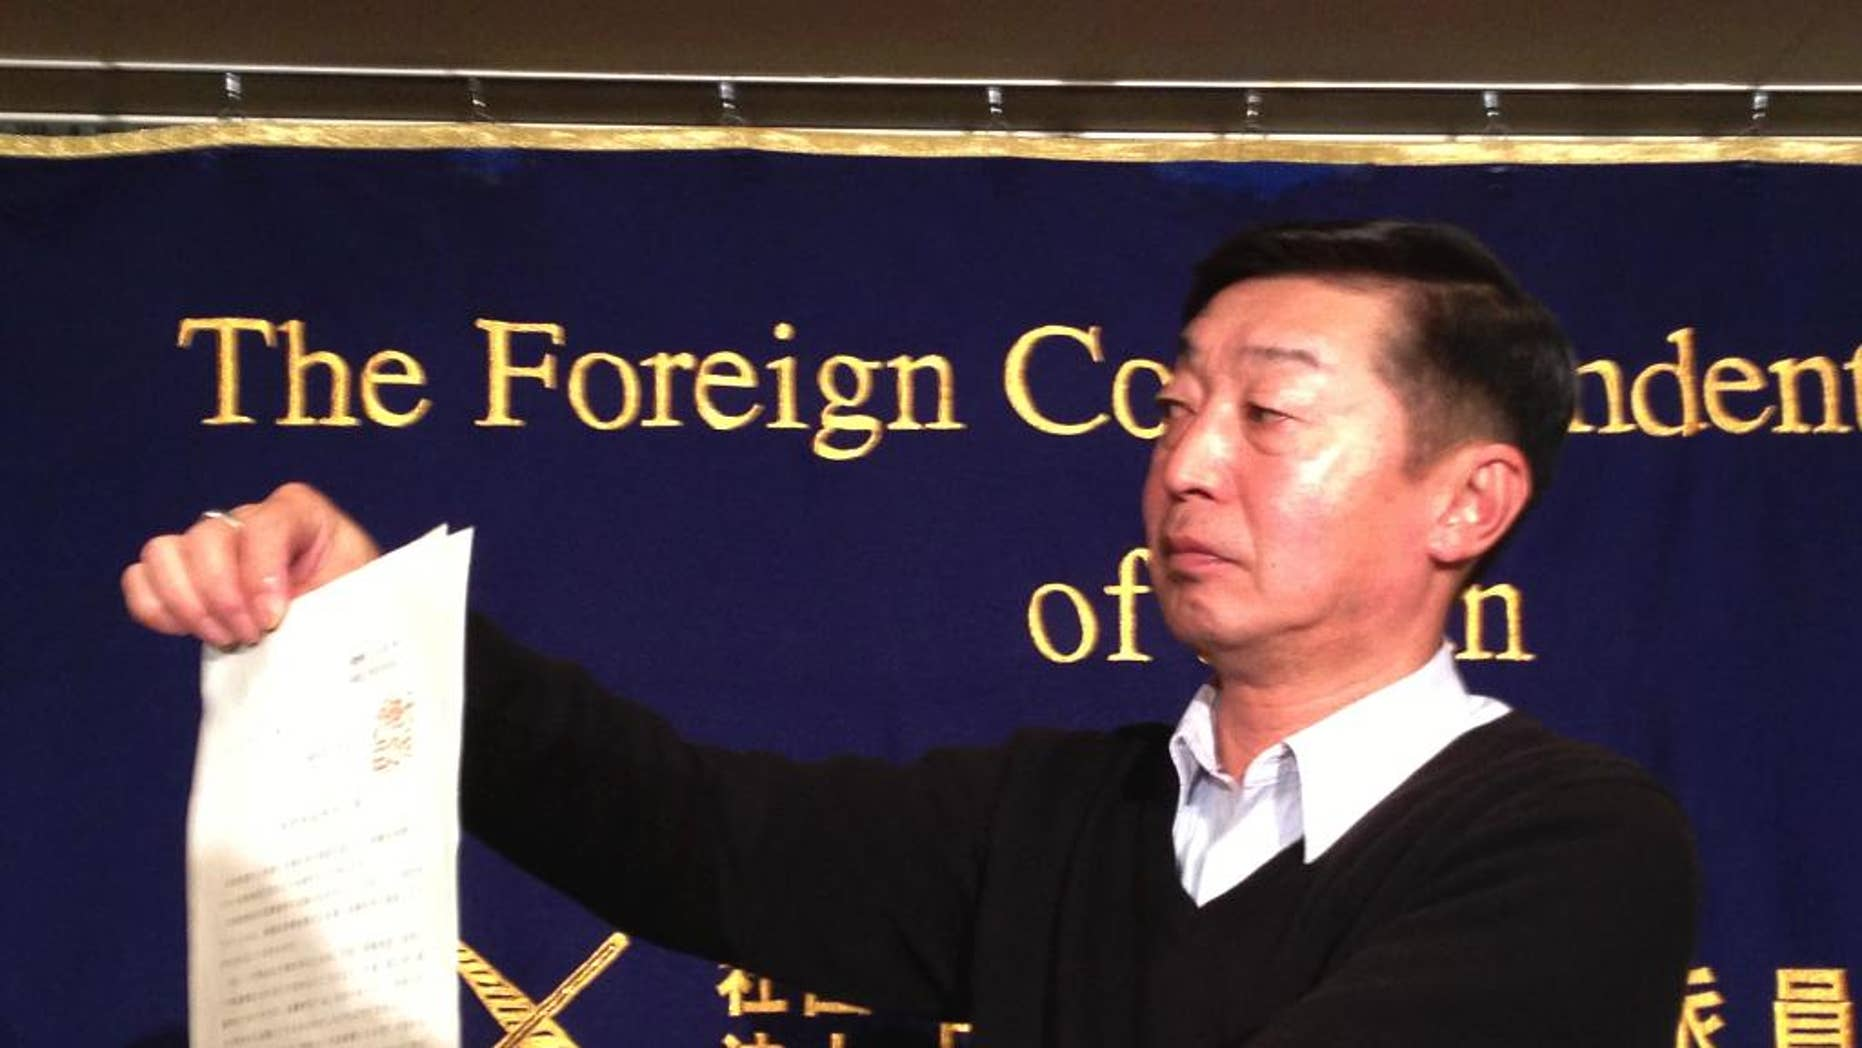 Japanese freelance photographer Yuichi Sugimoto shows the press the original document of an order, signed by Foreign Minister Fumio Kishida, which he was given by Japanese foreign ministry officials at his home, during a news conference in Tokyo Thursday, Feb. 12, 2015. Sugimoto said he was forced to give up his passport because he planned a reporting trip to Syria, which the government has stepped up warnings to its citizens not to visit after two Japanese were killed there in a recent hostage crisis. (AP Photo/Mari Yamaguchi)